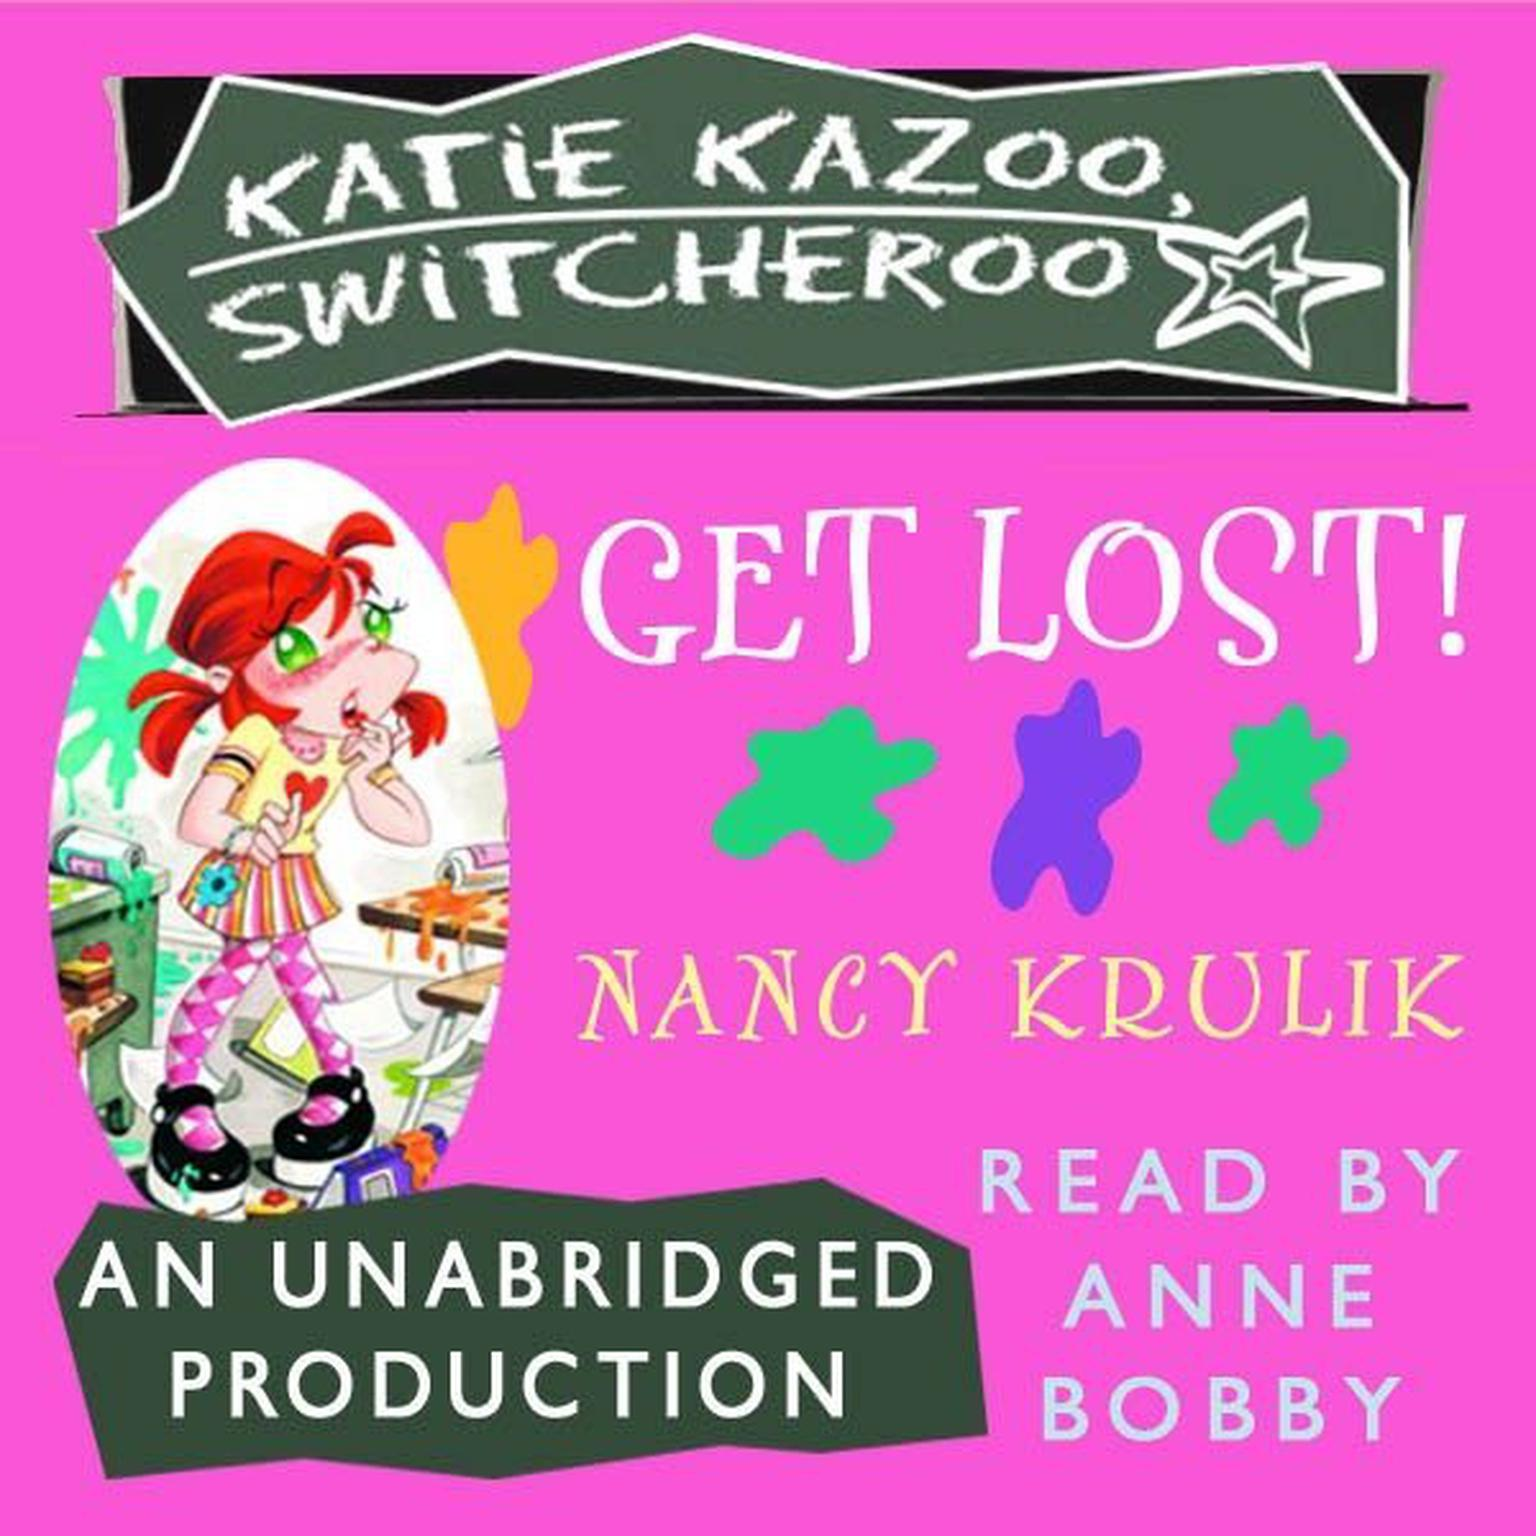 Printable Katie Kazoo, Switcheroo #6: Get Lost! Audiobook Cover Art